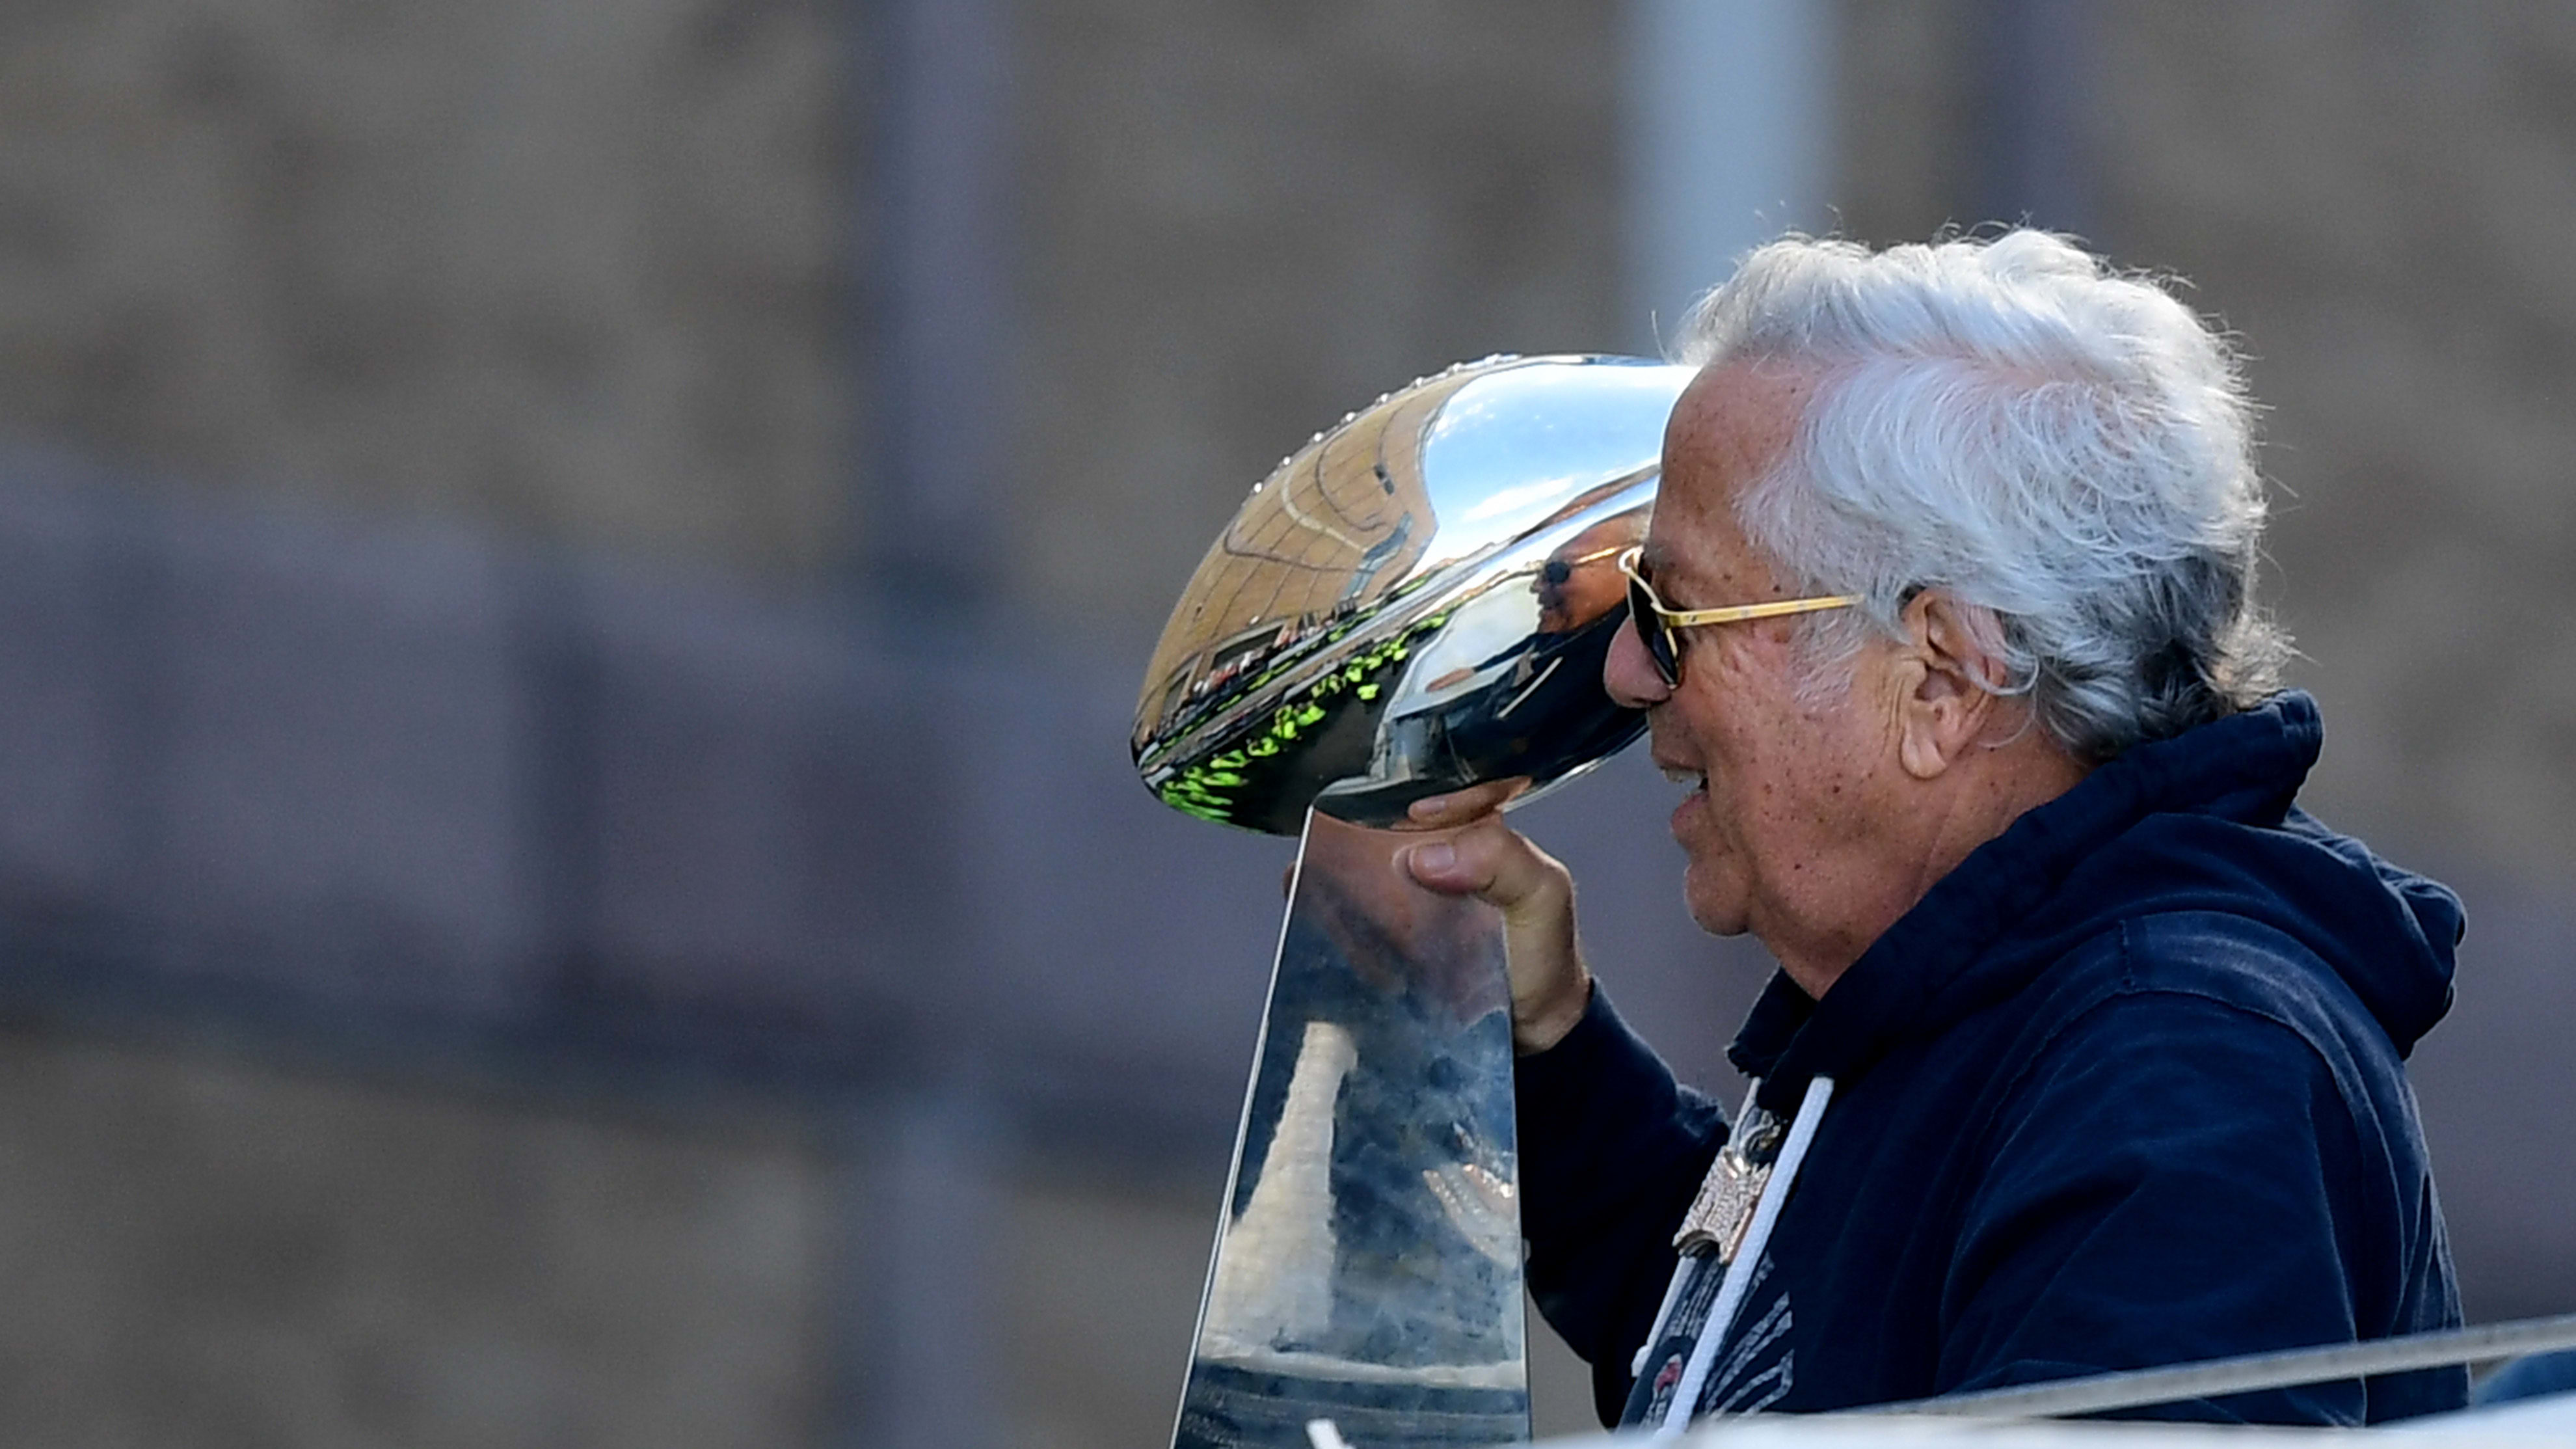 BOSTON, MASSACHUSETTS - FEBRUARY 05: Owner Robert Kraft of the New England Patriots displays the Vince Lombardi trophy during the Super Bowl Victory Parade on February 05, 2019 in Boston, Massachusetts. (Photo by Billie Weiss/Getty Images)